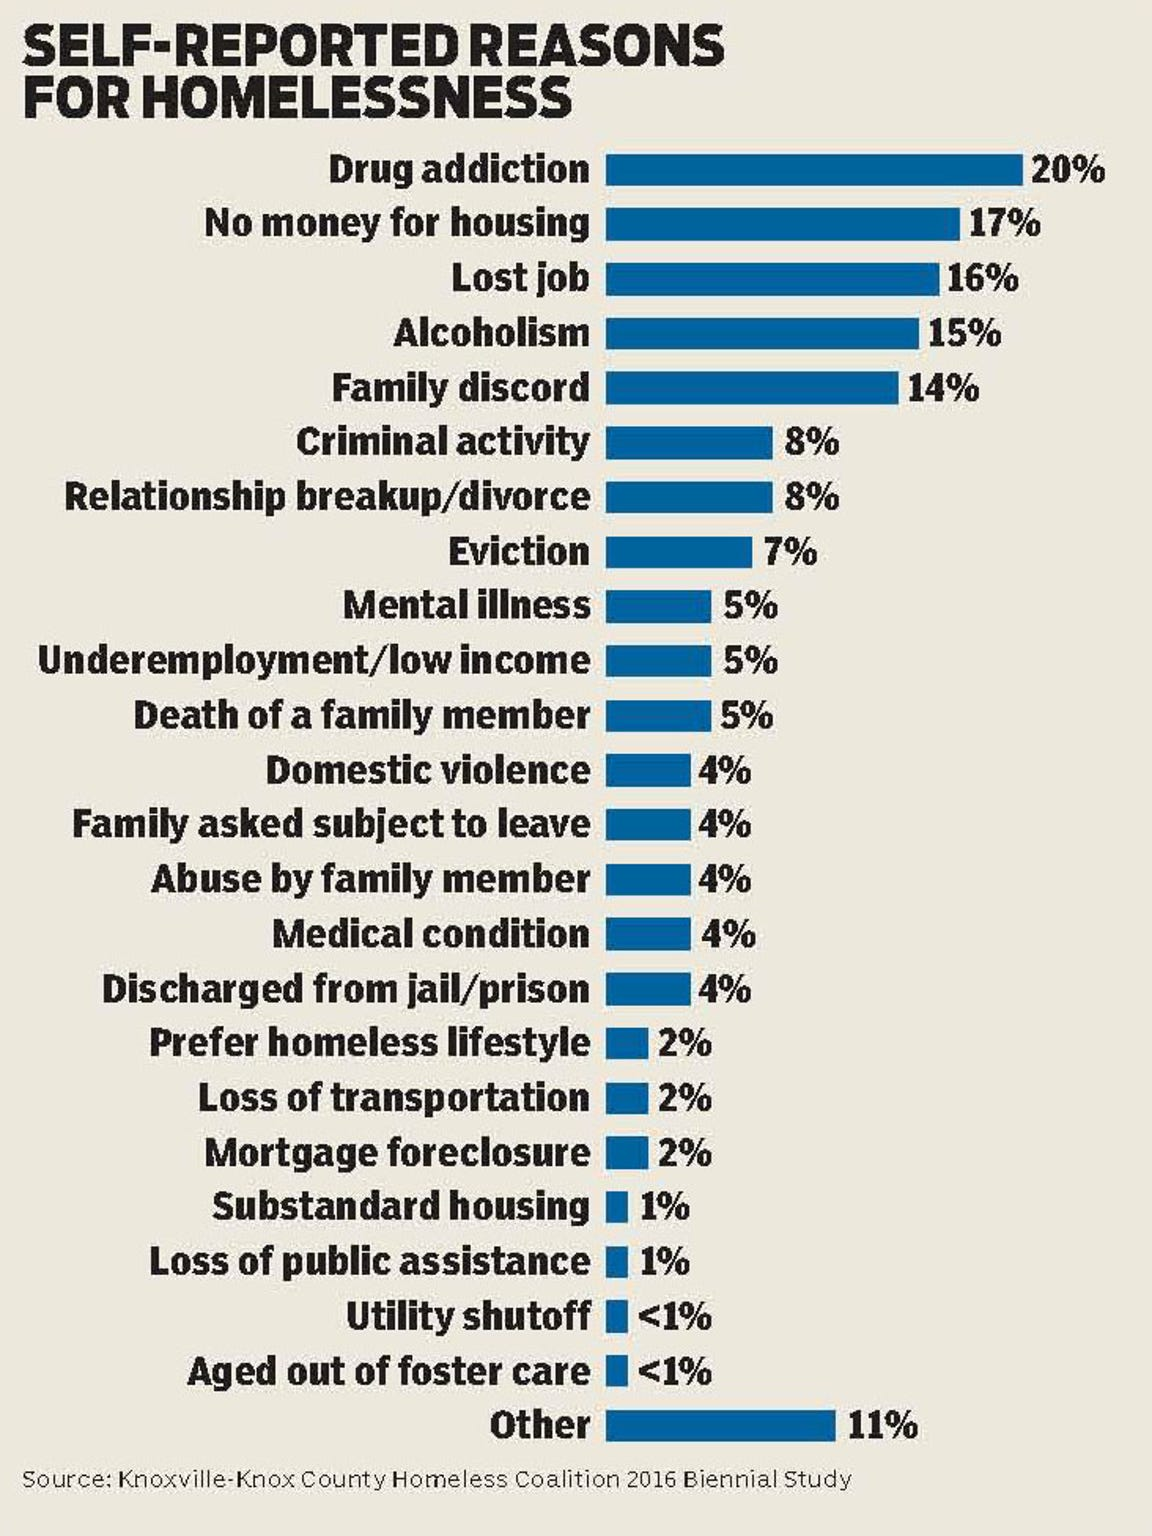 Self-reported reasons for homelessness